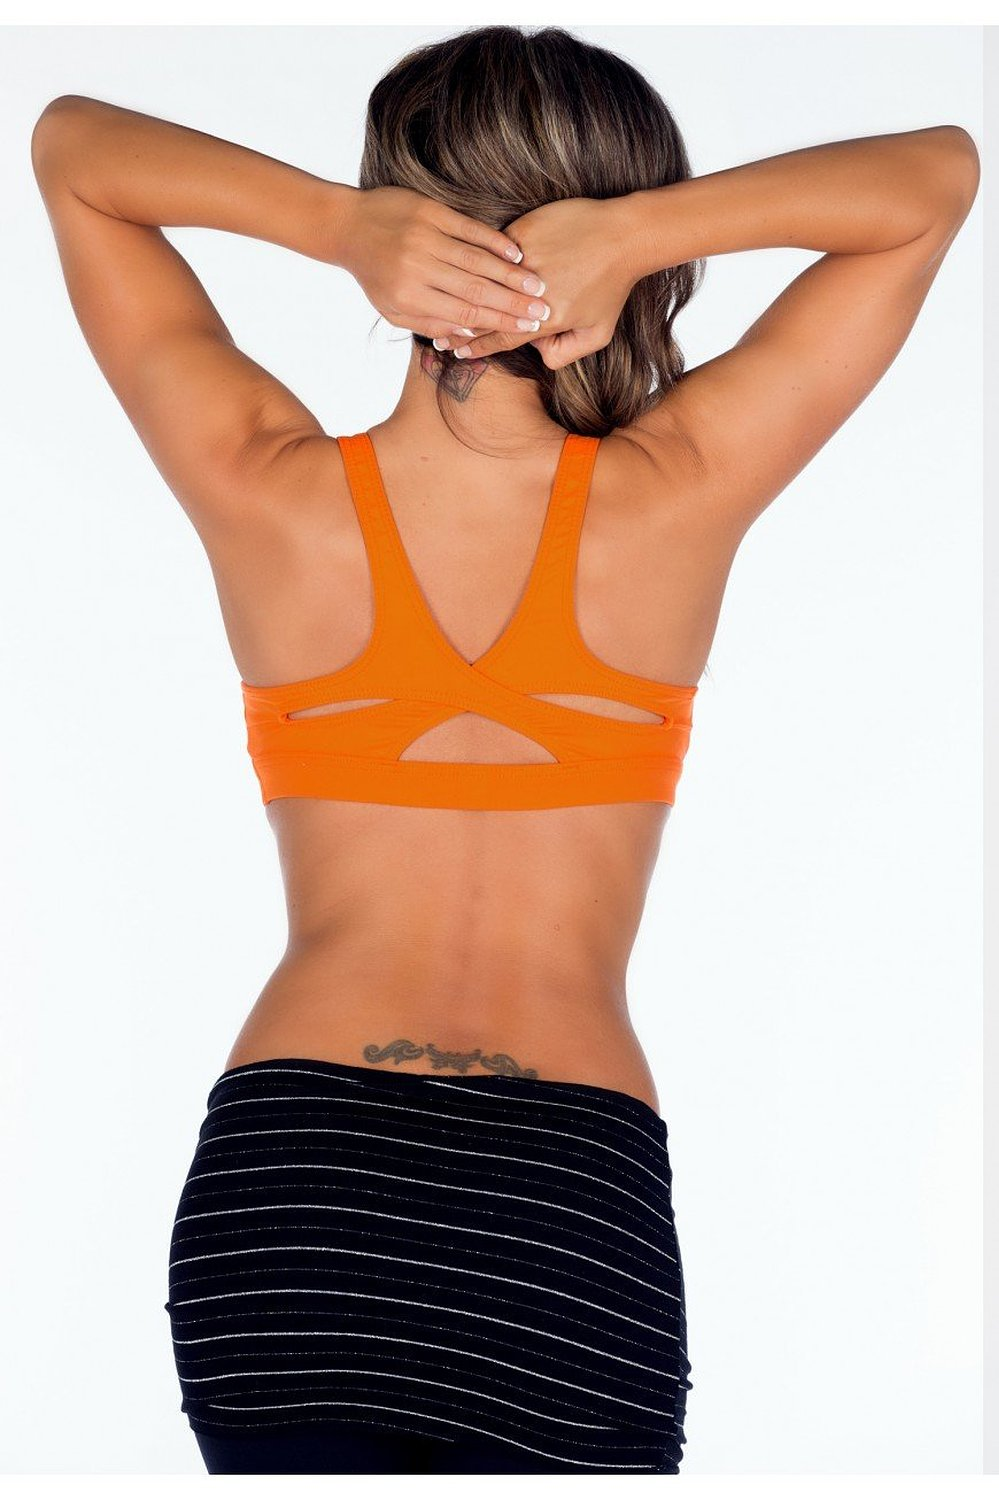 390e835963 Get Quotations · Lino Fitness Sports Wear Bra Top with Criss Cross Back